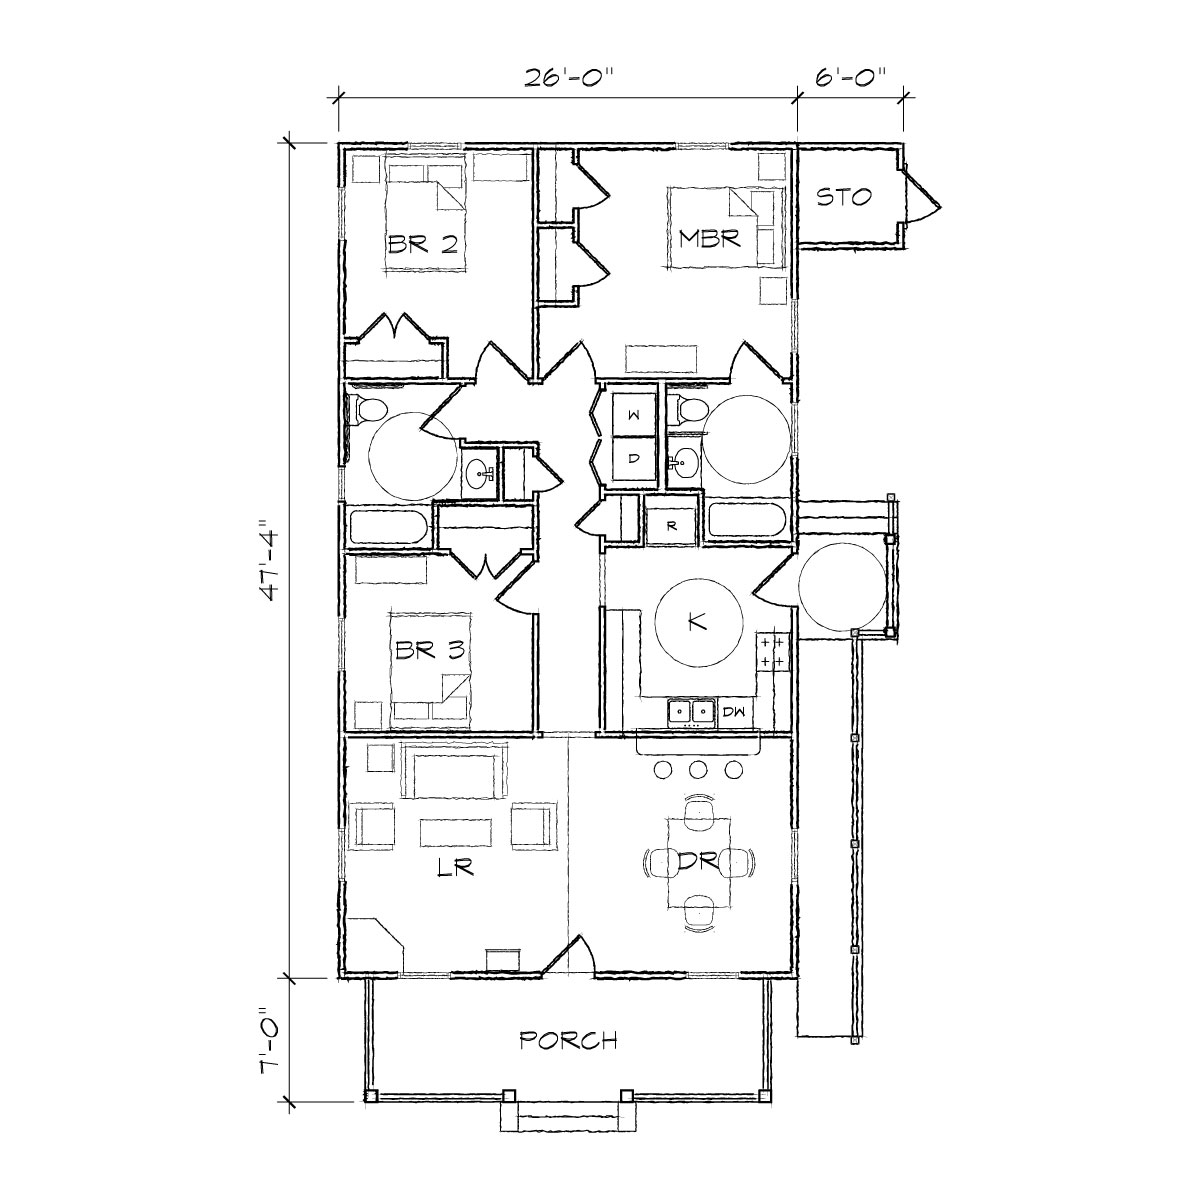 2 bedroom bungalow plans bungalow floor plan floor plan for Two bedroom bungalow plans